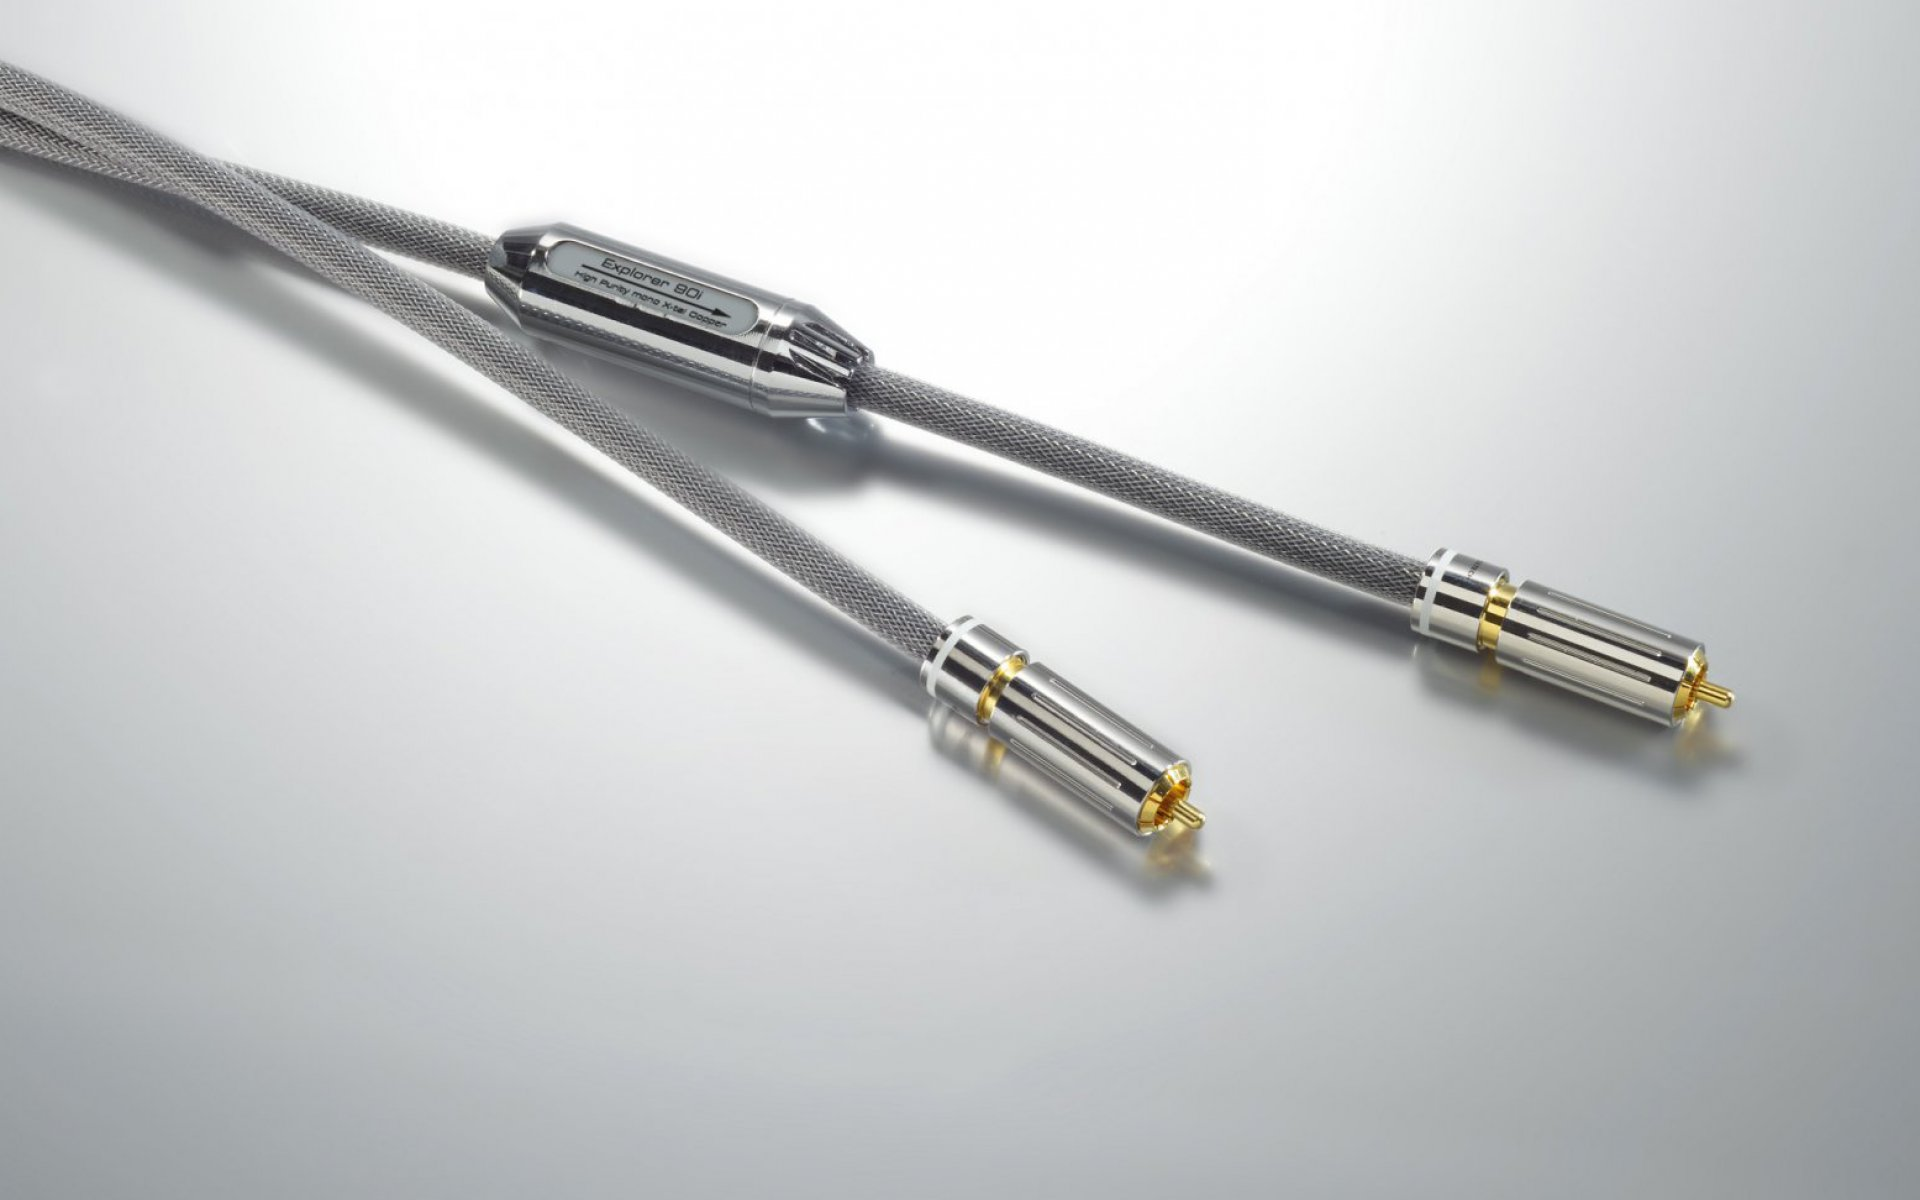 Siltech Explorer 90i Interconnect audio cable with RCA connector